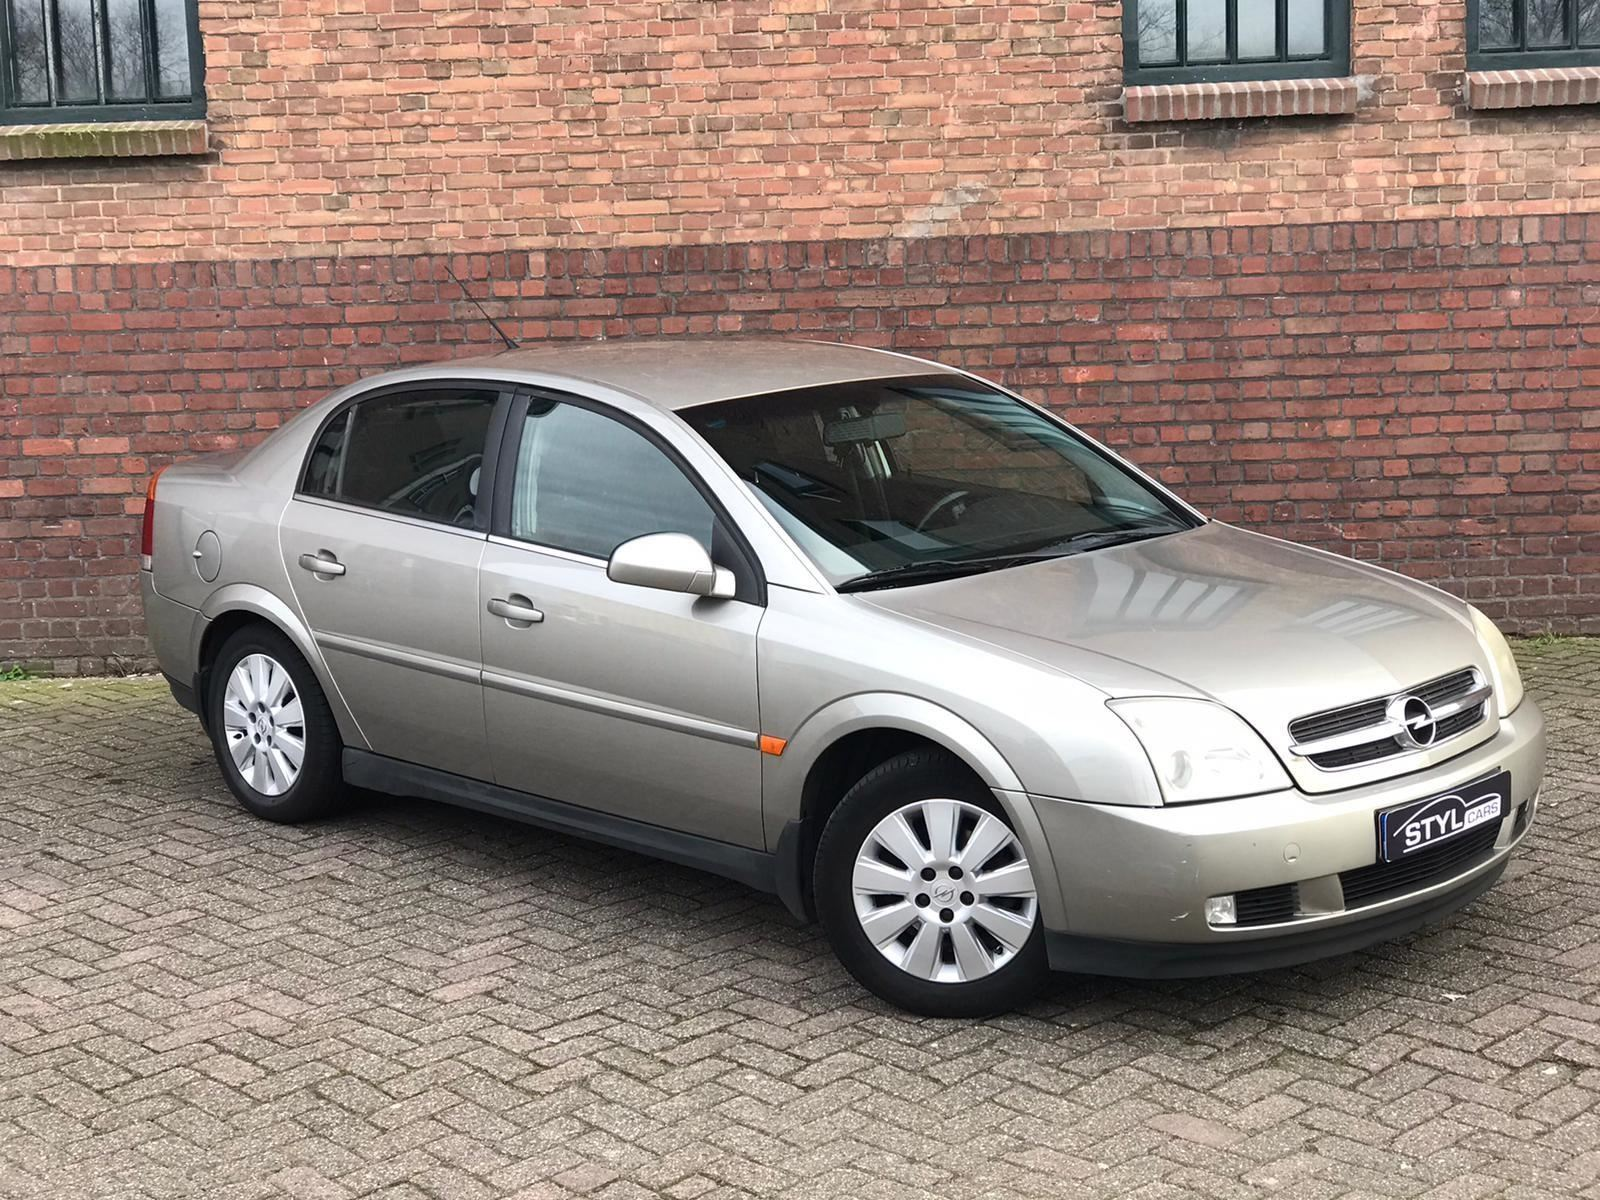 Opel Vectra occasion - Styl Cars